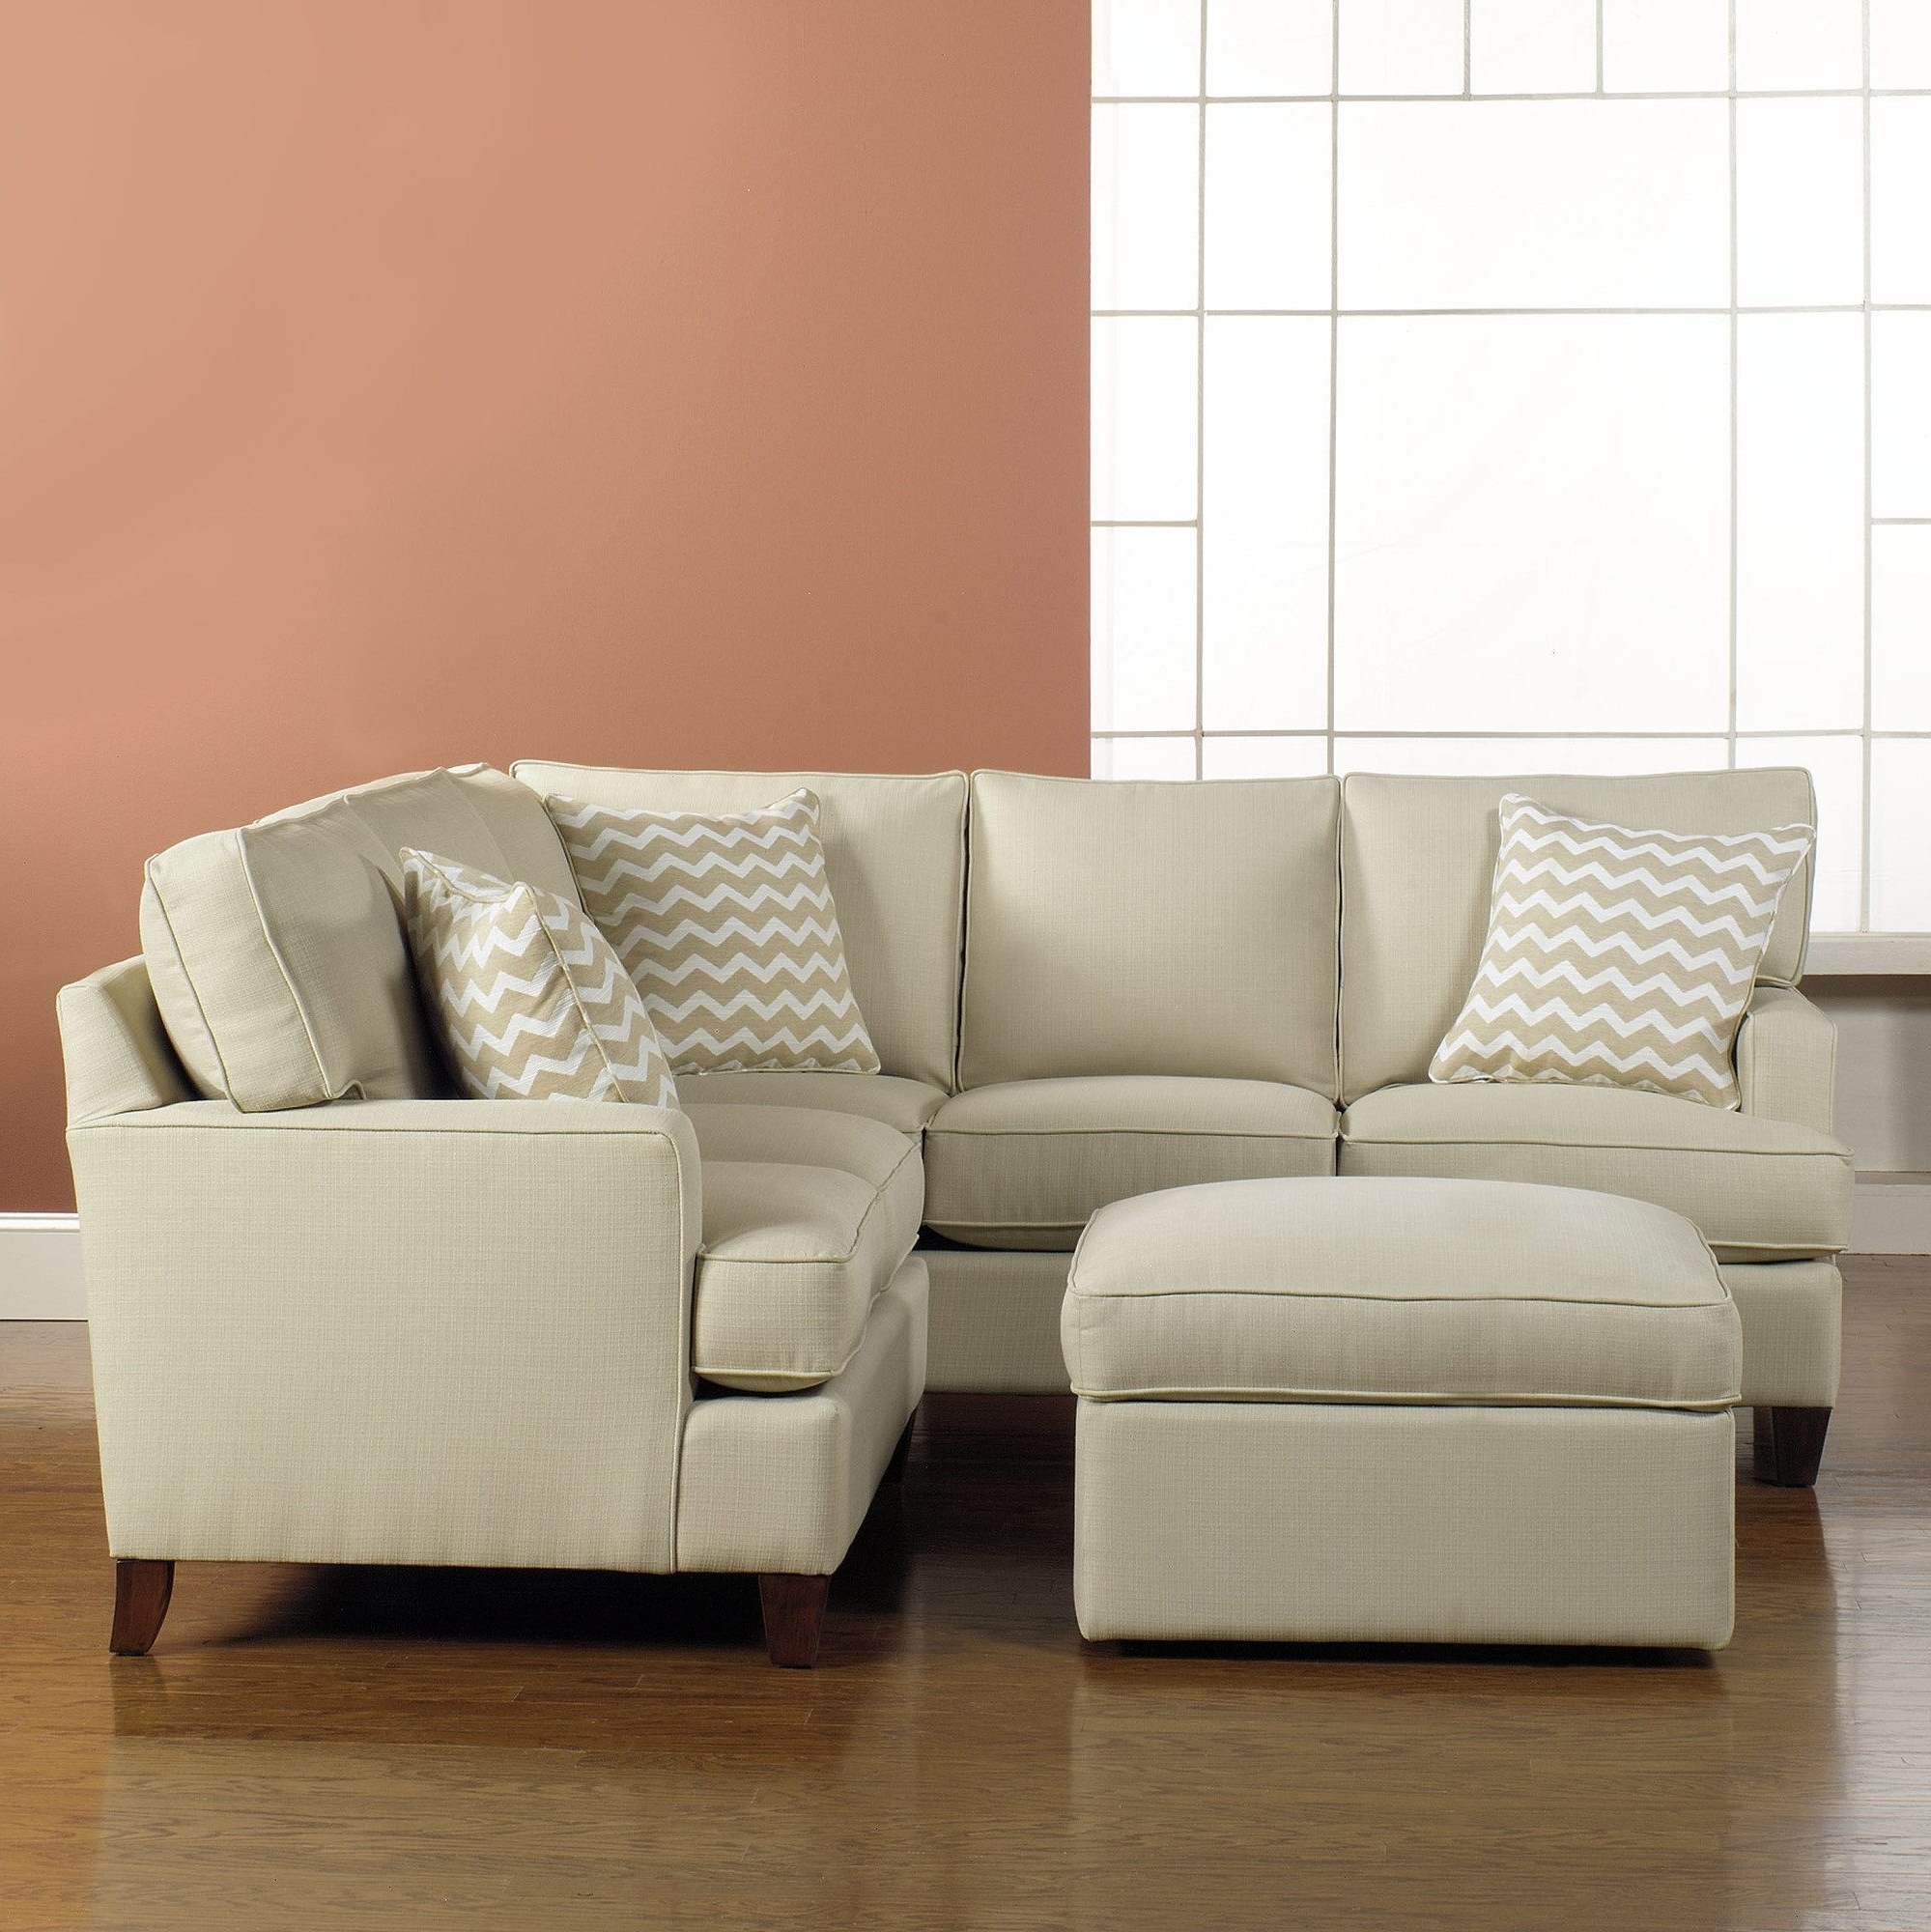 Widely Used Sectional Sofas For Small Places Within Sofa : Small 2 Piece Sectional Sofa Comfy Sectionals For Small (View 20 of 20)